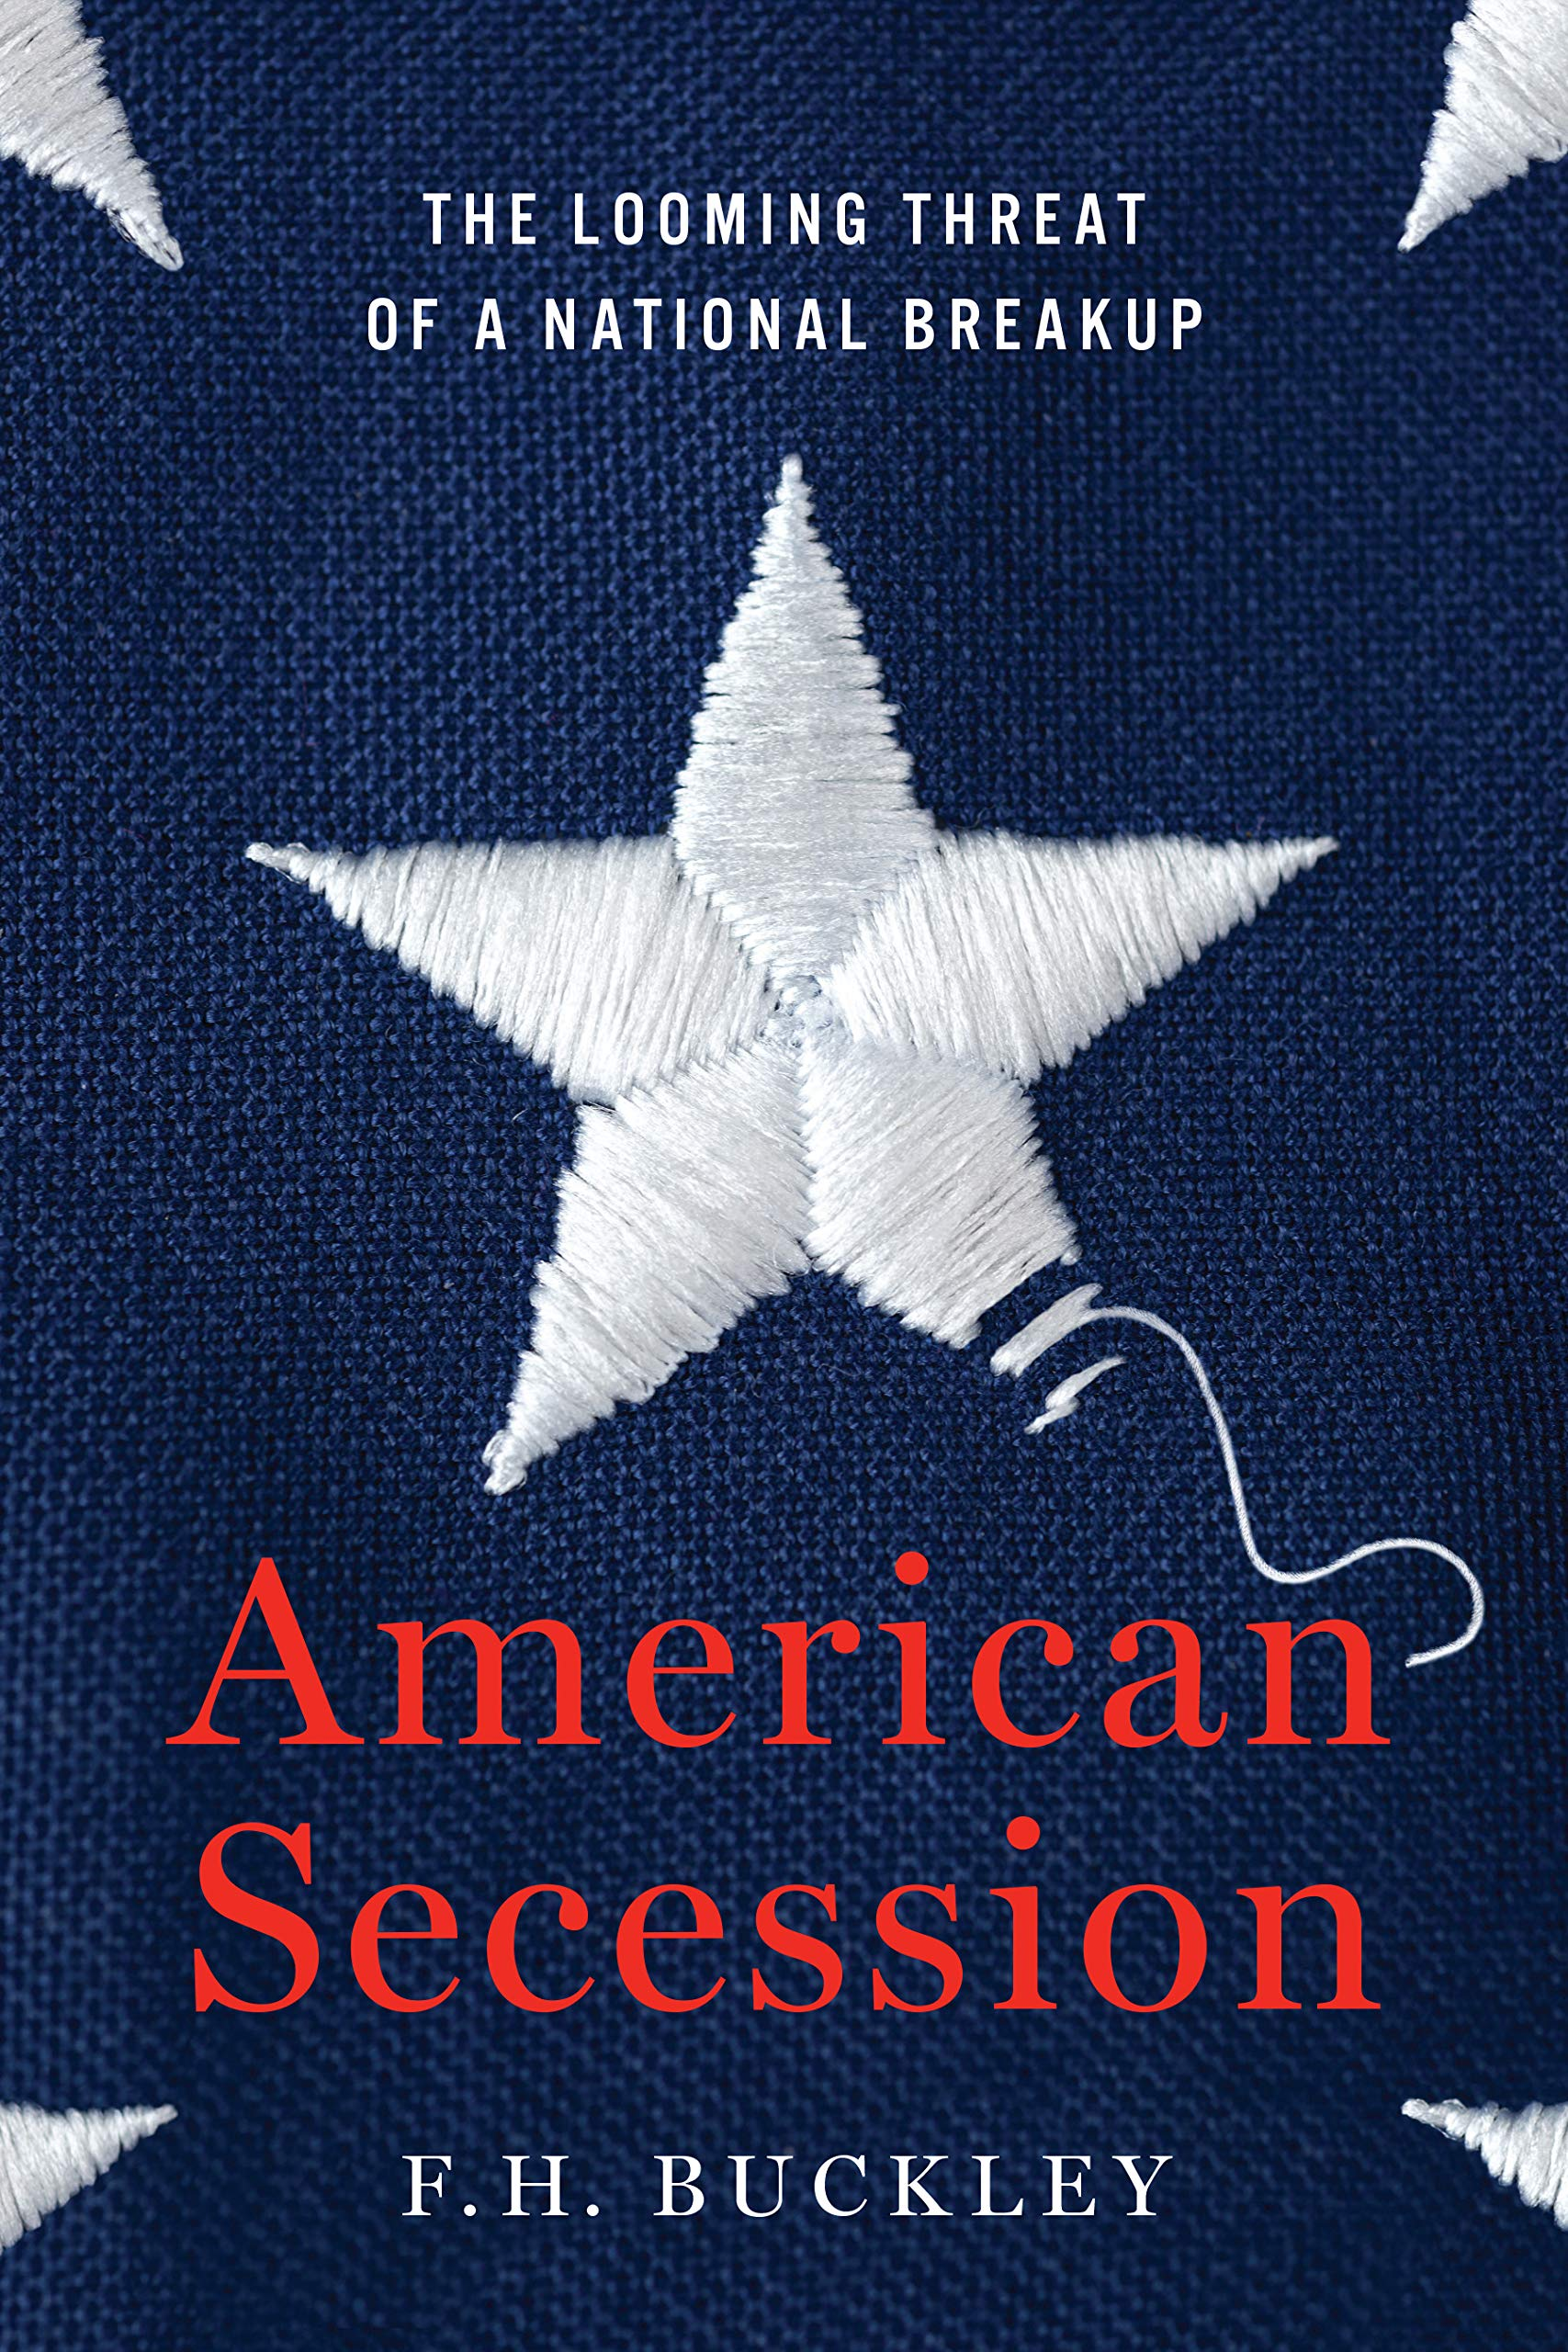 Amazon.com: American Secession: The Looming Threat of a National ...